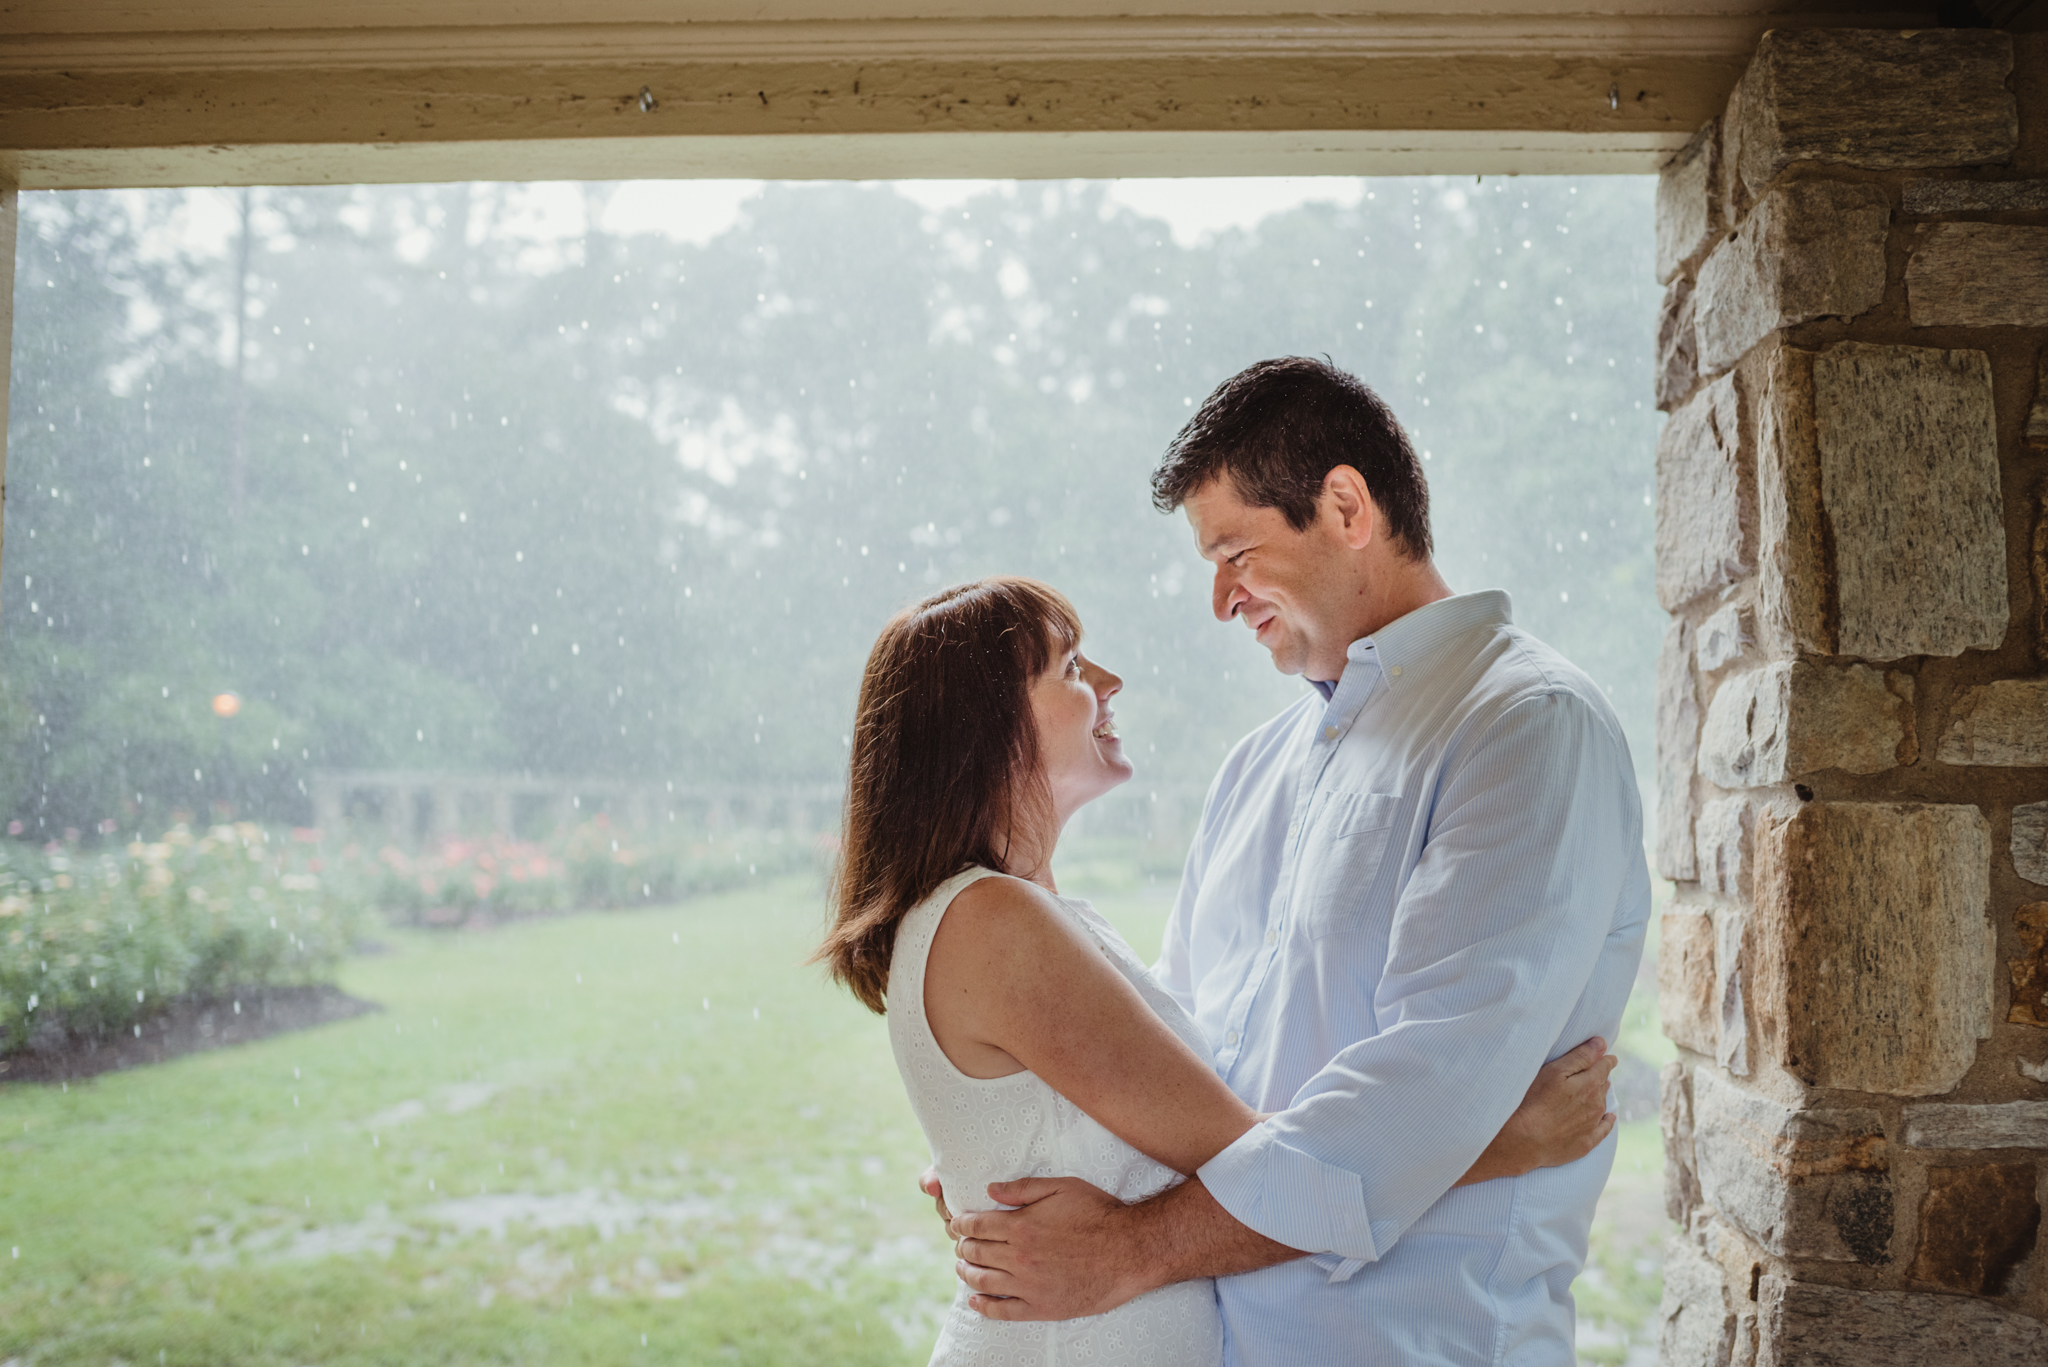 The bride and groom to be hold each other, during their engagement session, in the shelter during the rainstorm in Raleigh, picture by Rose Trail Images.